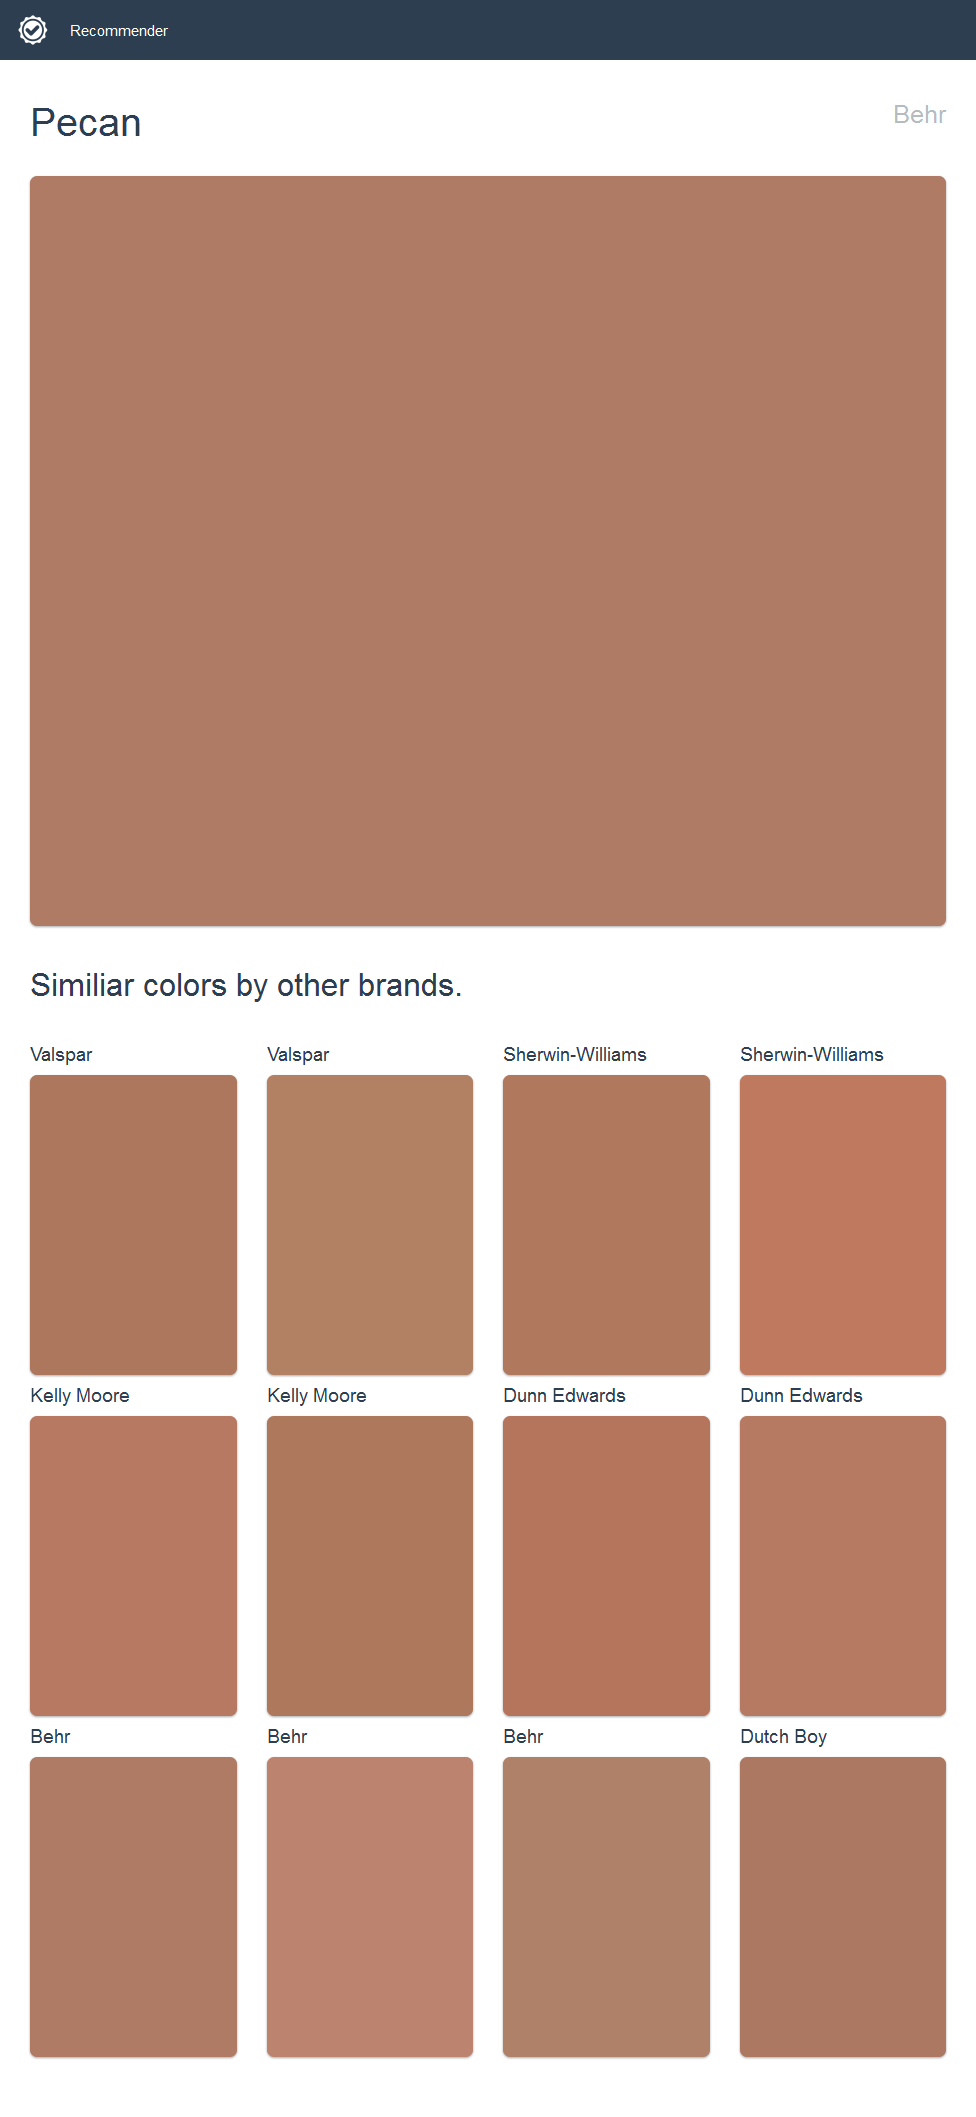 Pecan, Behr. Click the image to see similiar colors by other brands.